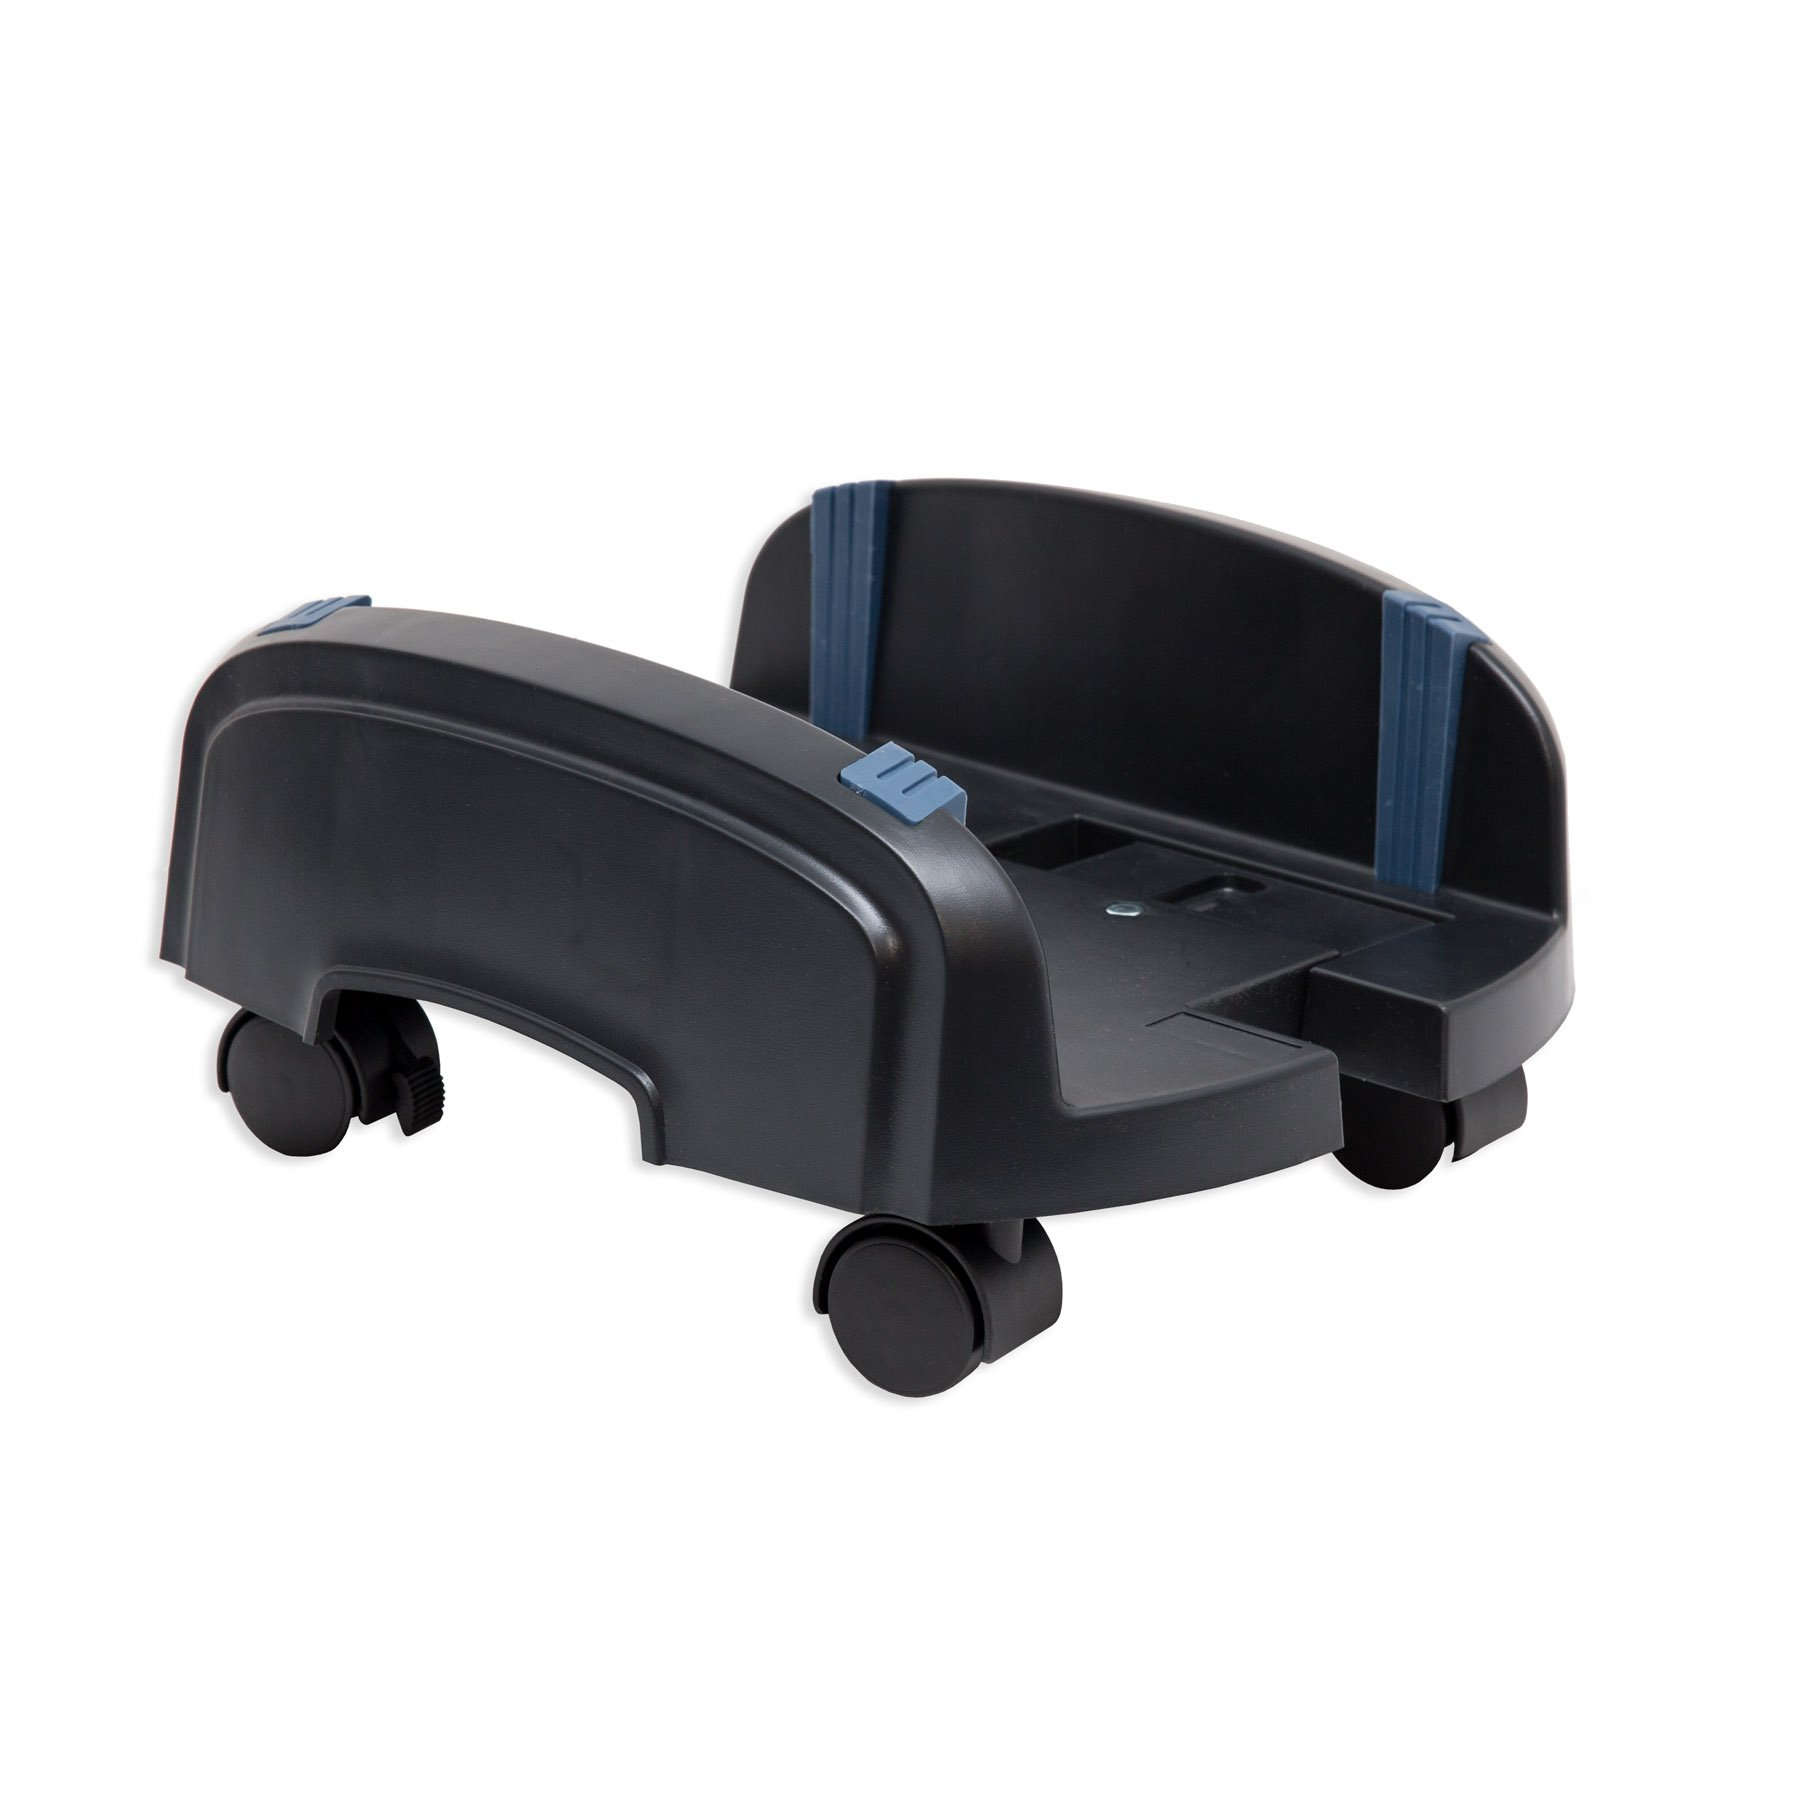 Syba Computer PC Stand for ATX Case with Adjustable Width 6.2'' to 10'' and 4 Caster Wheels, Hold up to 50 Lbs